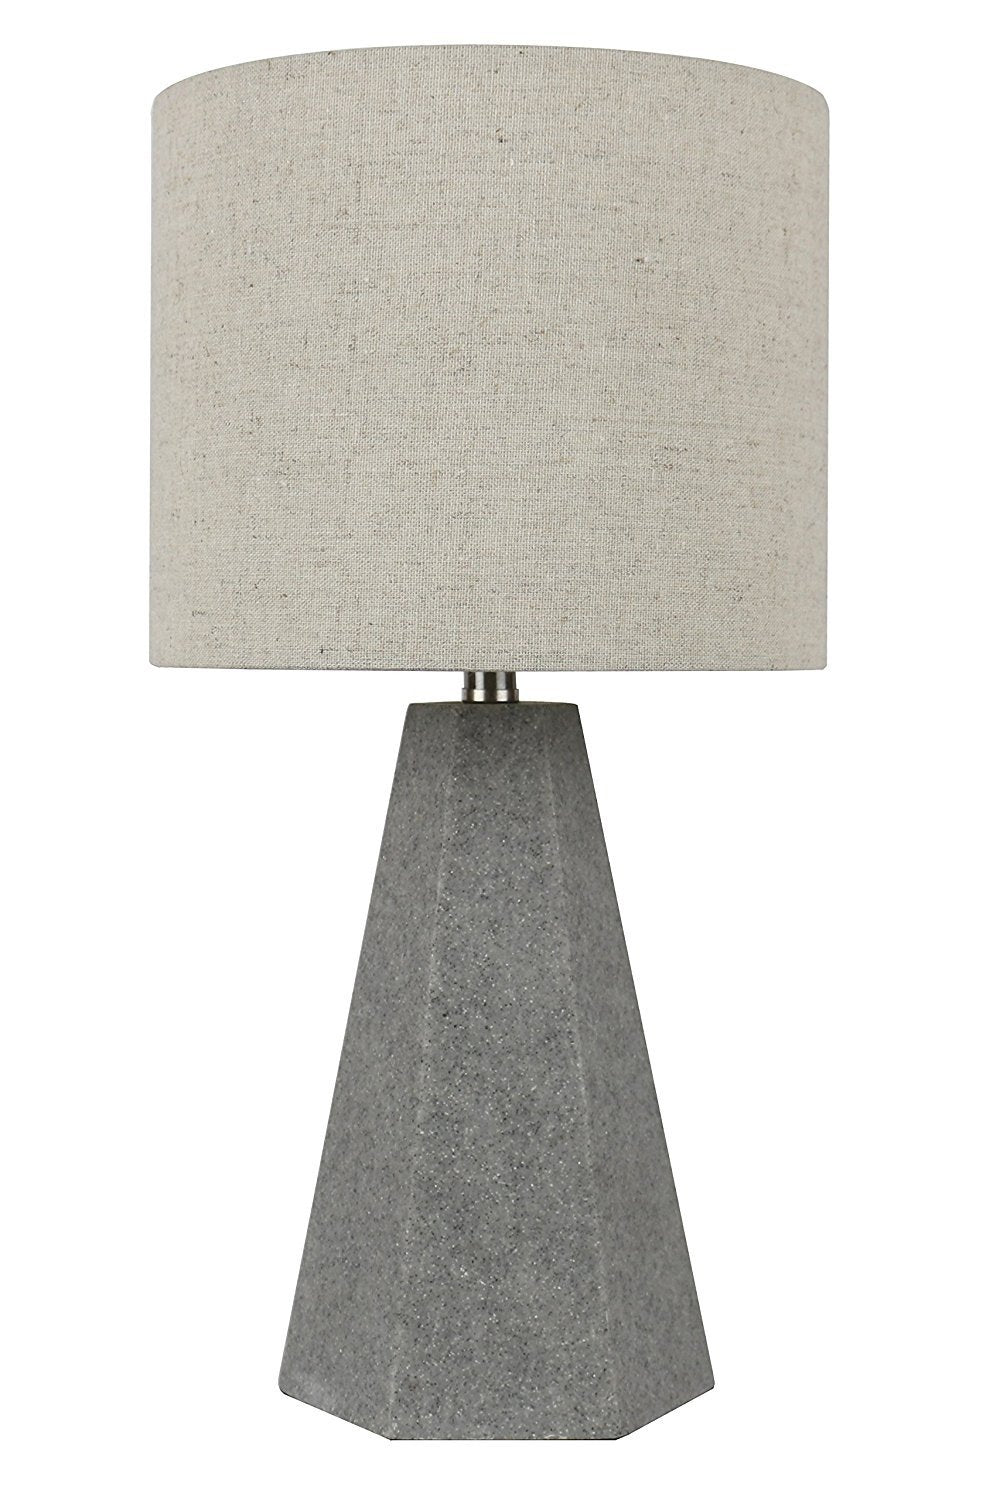 Cemento Table Lamp